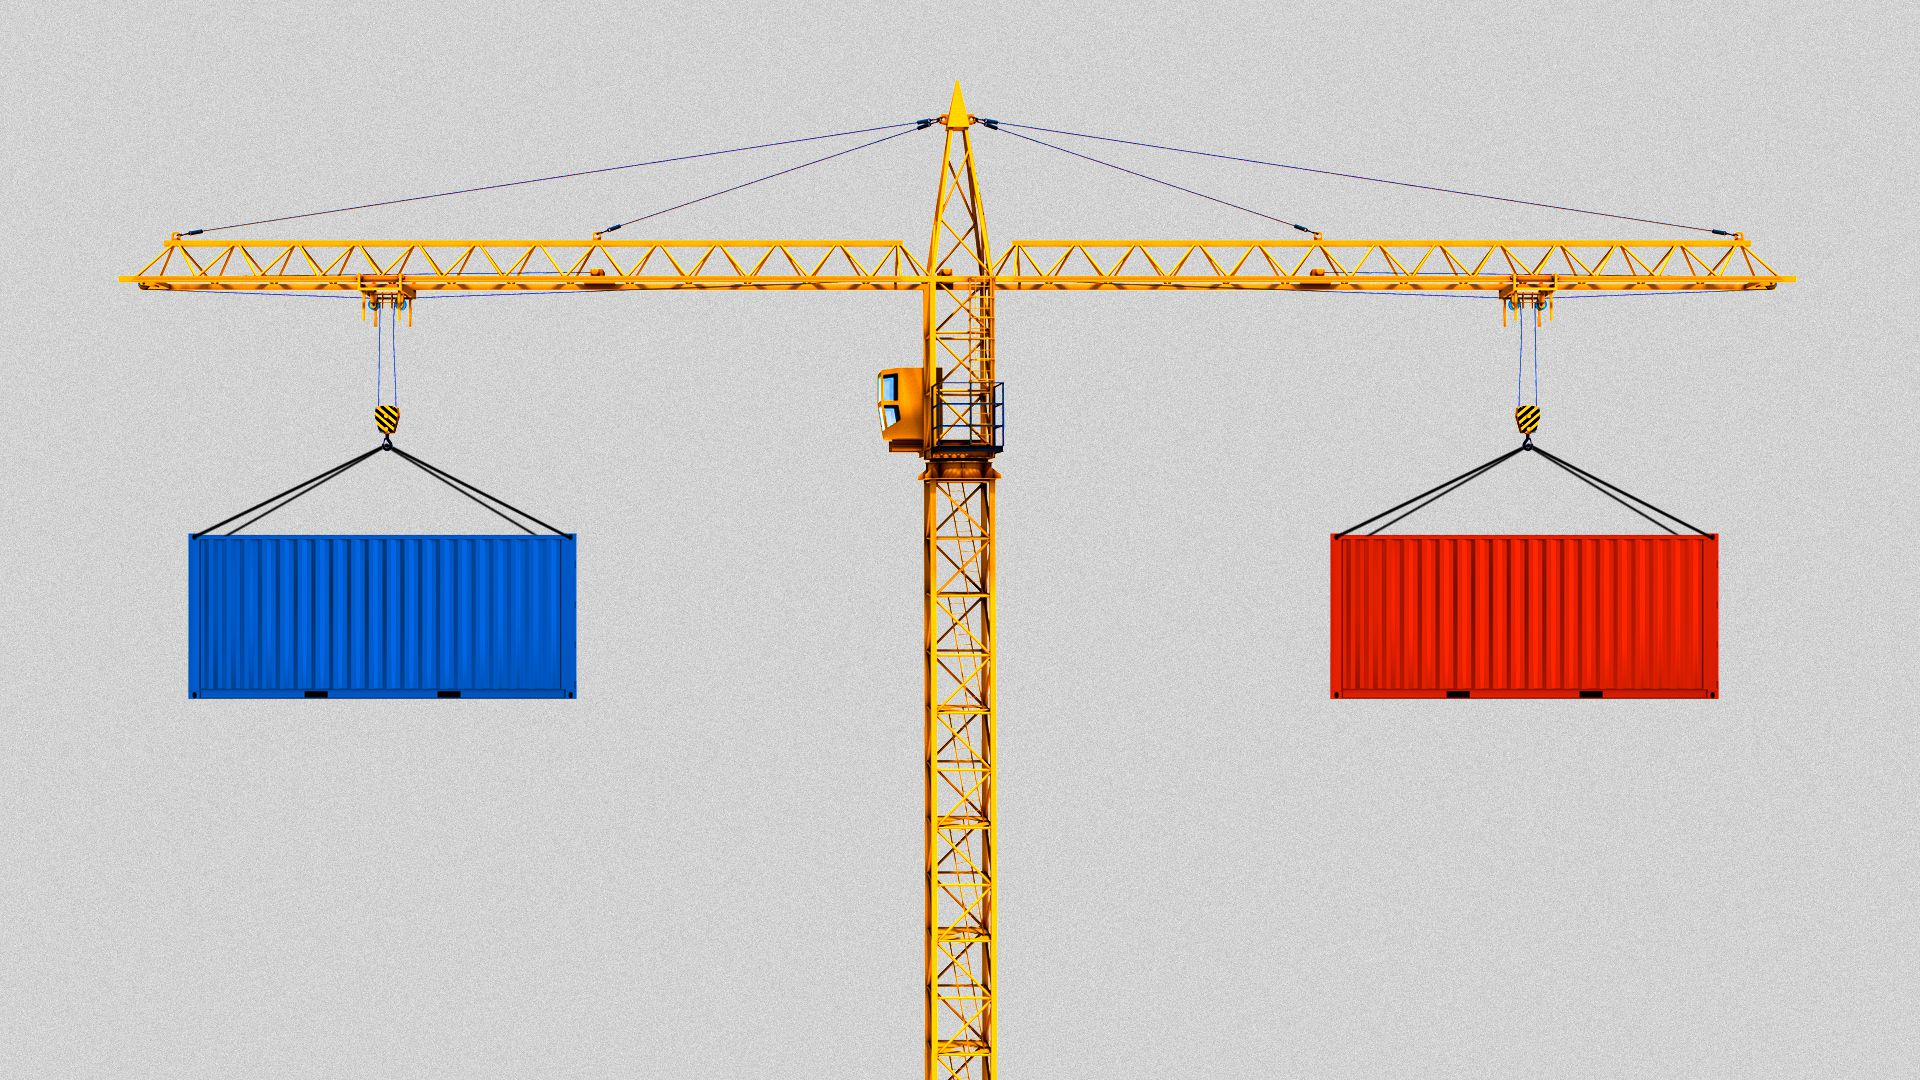 A crane balancing red and blue construction materials